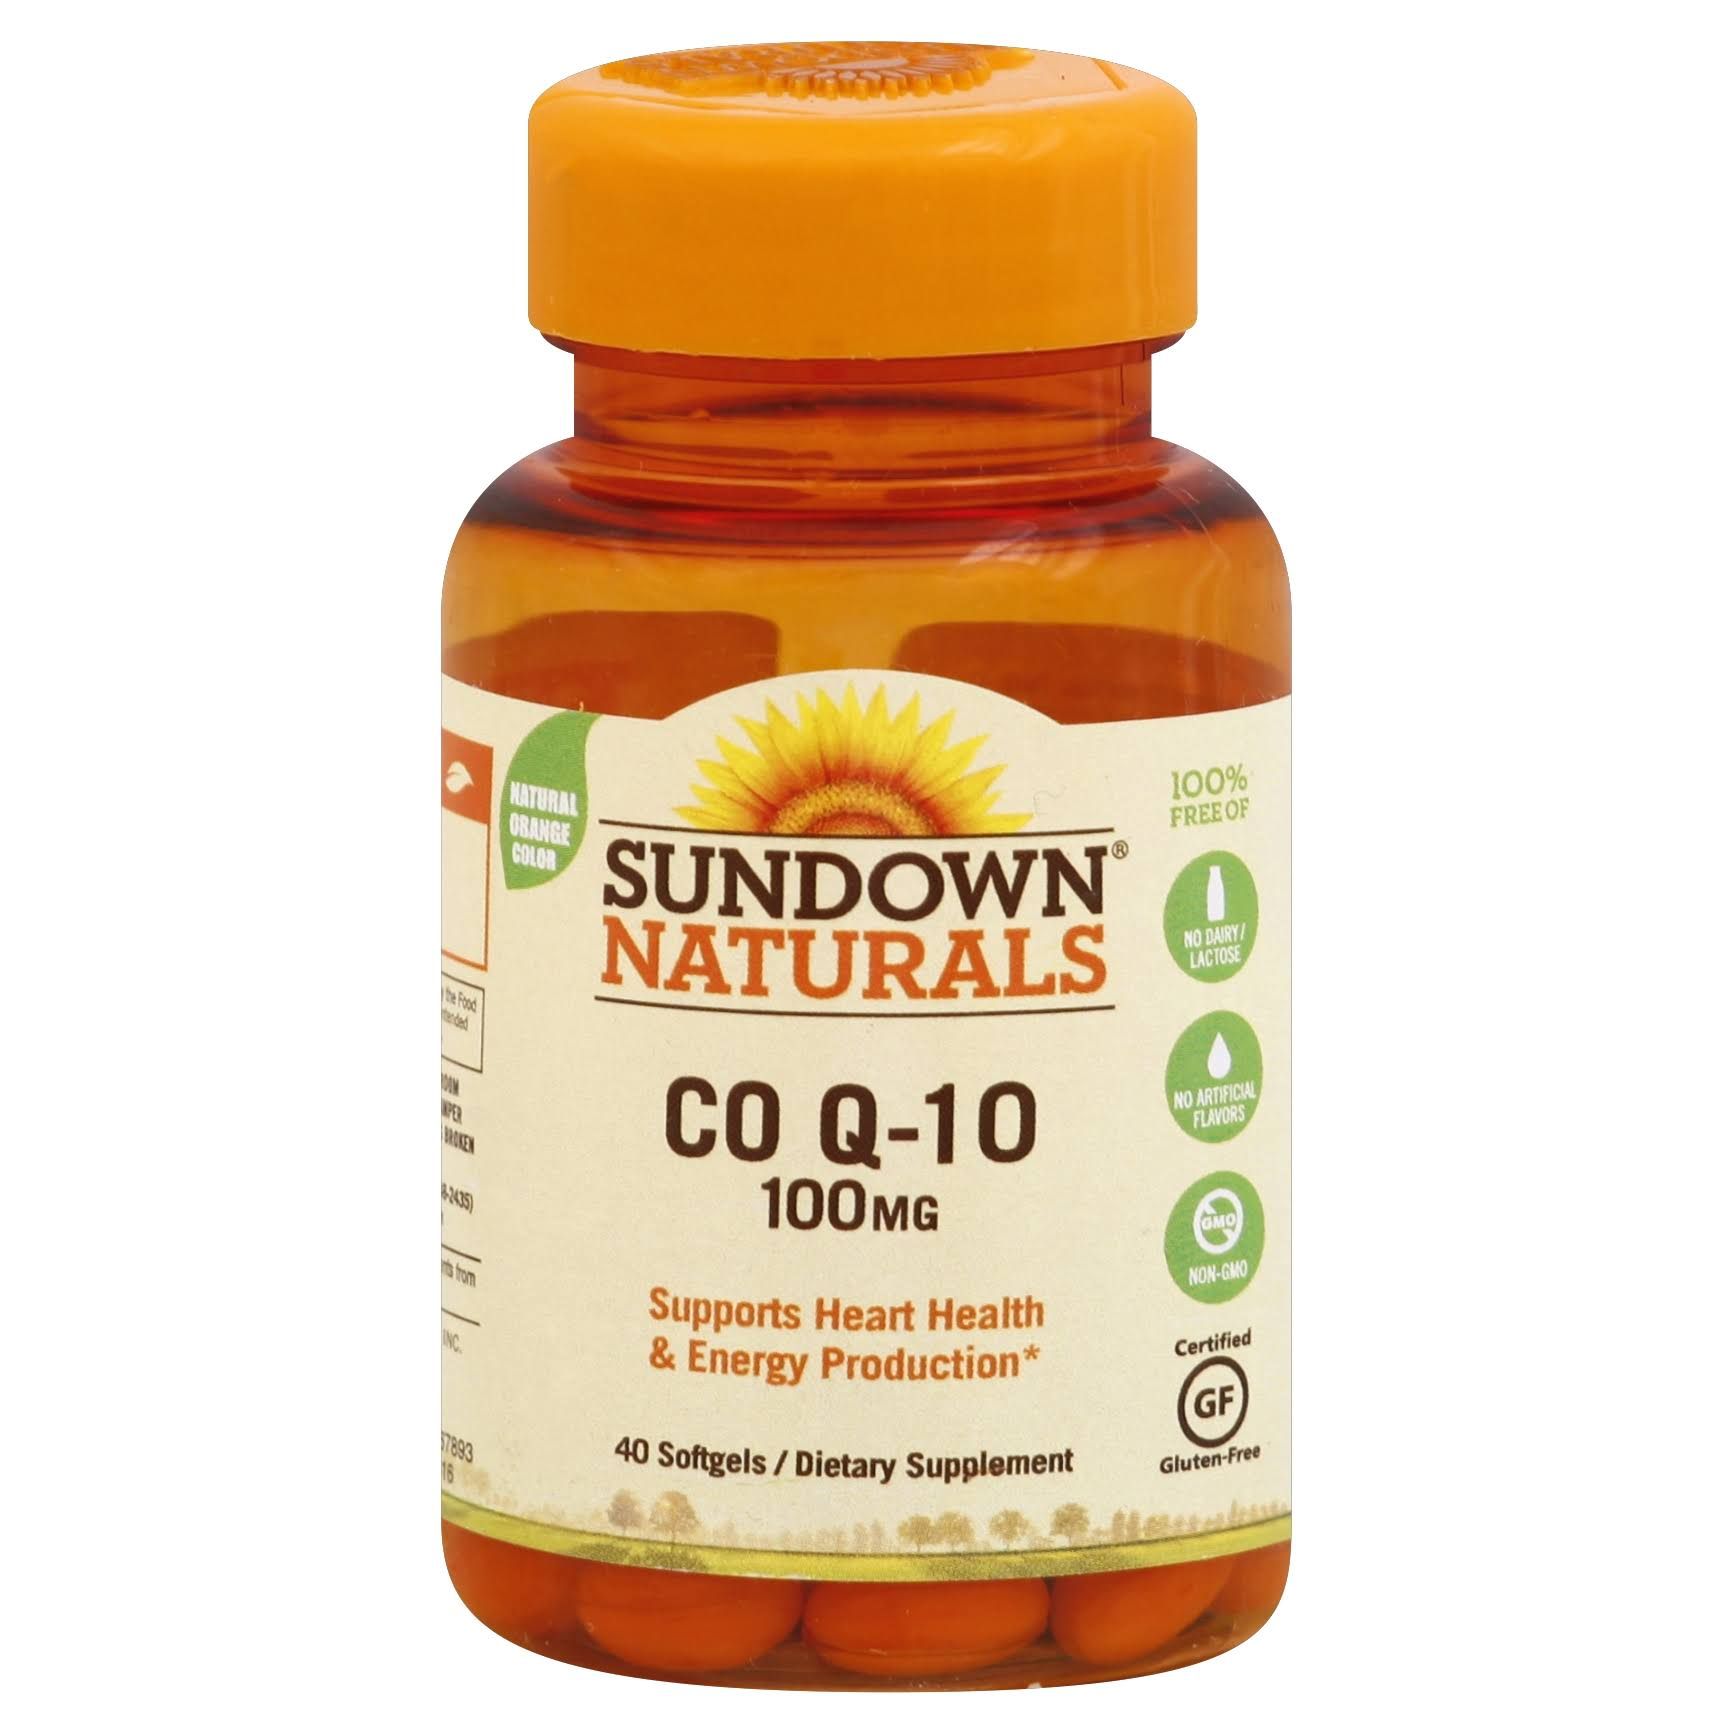 Sundown Naturals Co Q-10 100mg Softgels - x40